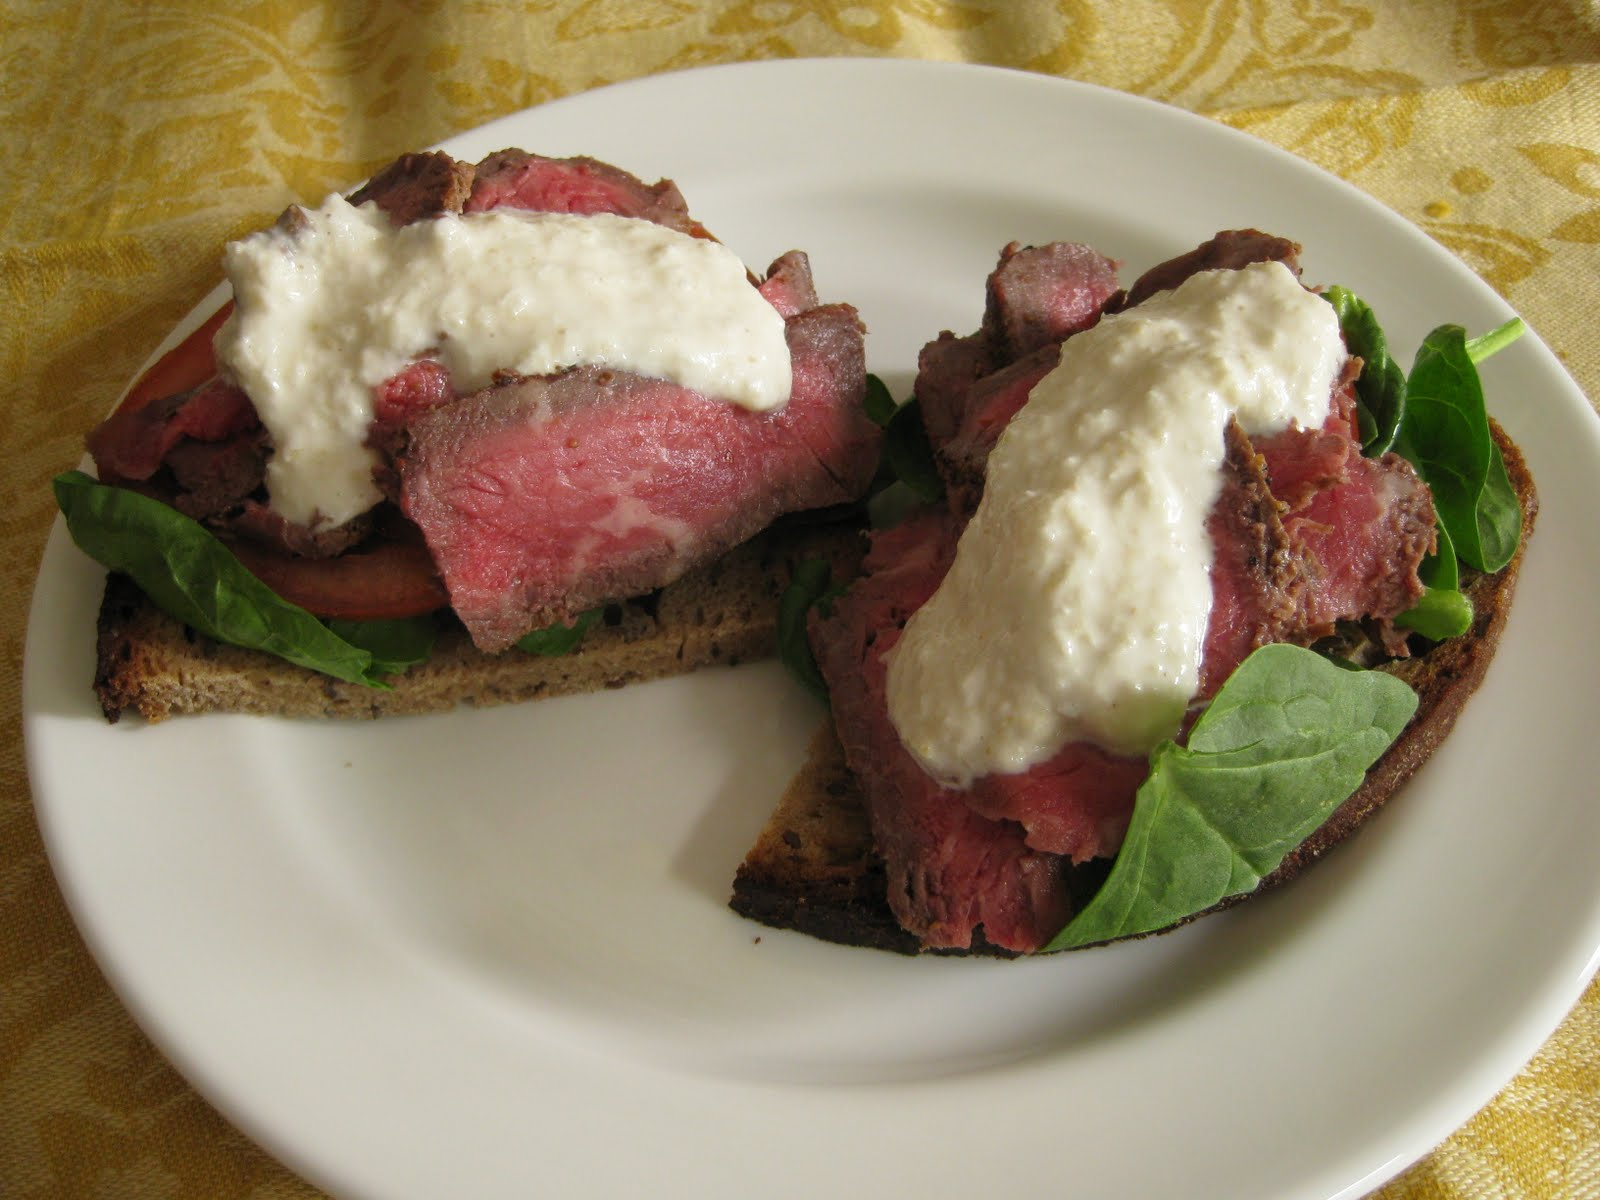 ... Food of Love, Play On: Smørrebrød - The Danish Open-Faced Sandwich